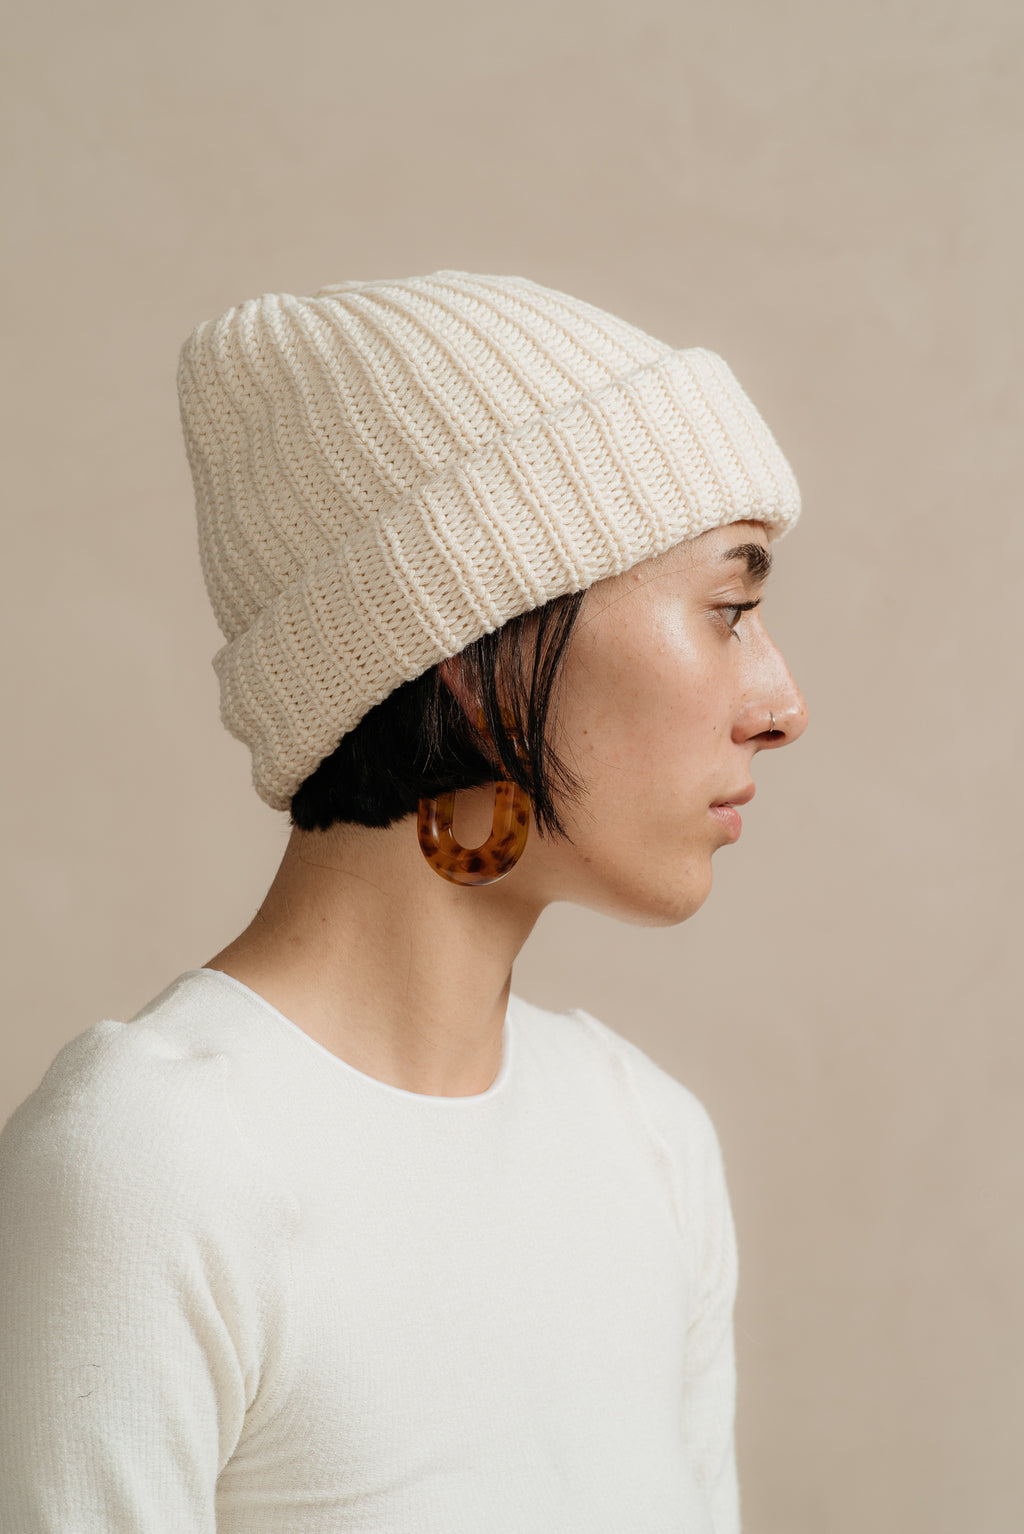 Columbia Knit | COTTON KNIT BEANIE IN NATURAL